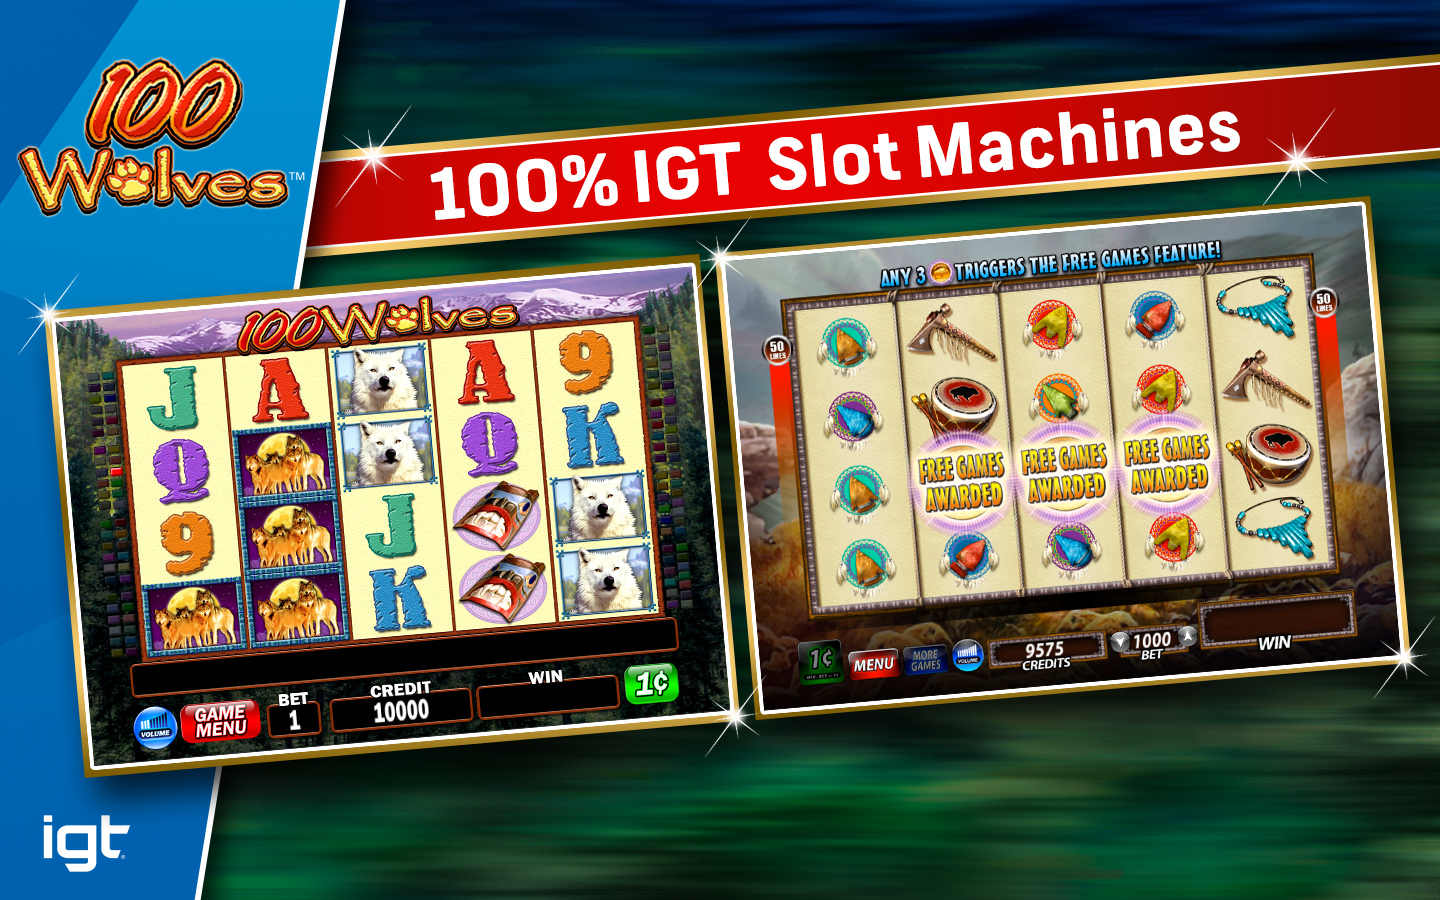 Igt slot games for pc forum atlantic city online casinos with best igt slot machine games igt slots paradise garden igt slots 100 wolves igt slots garden party igt izmirmasajfo